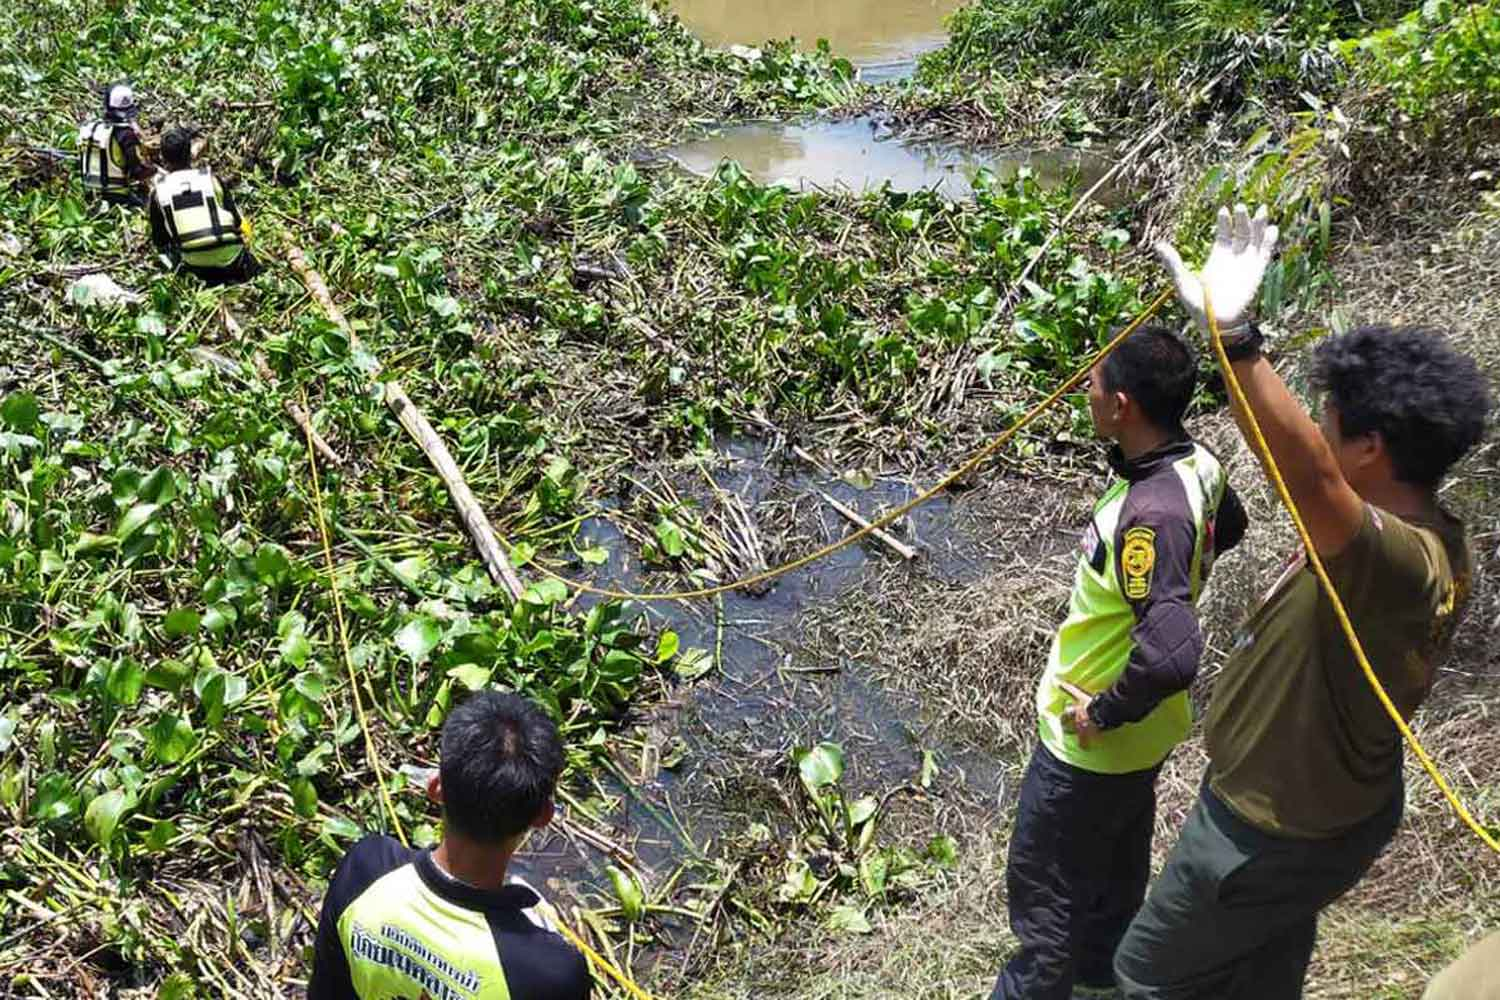 Rescuers retrieve the body of an elderly woman from Lam Pao stream in Muang district, Kalasin, on Sunday. The woman disappeared into the water on Friday. (Photo: Yongyuth Phuphuangpet)